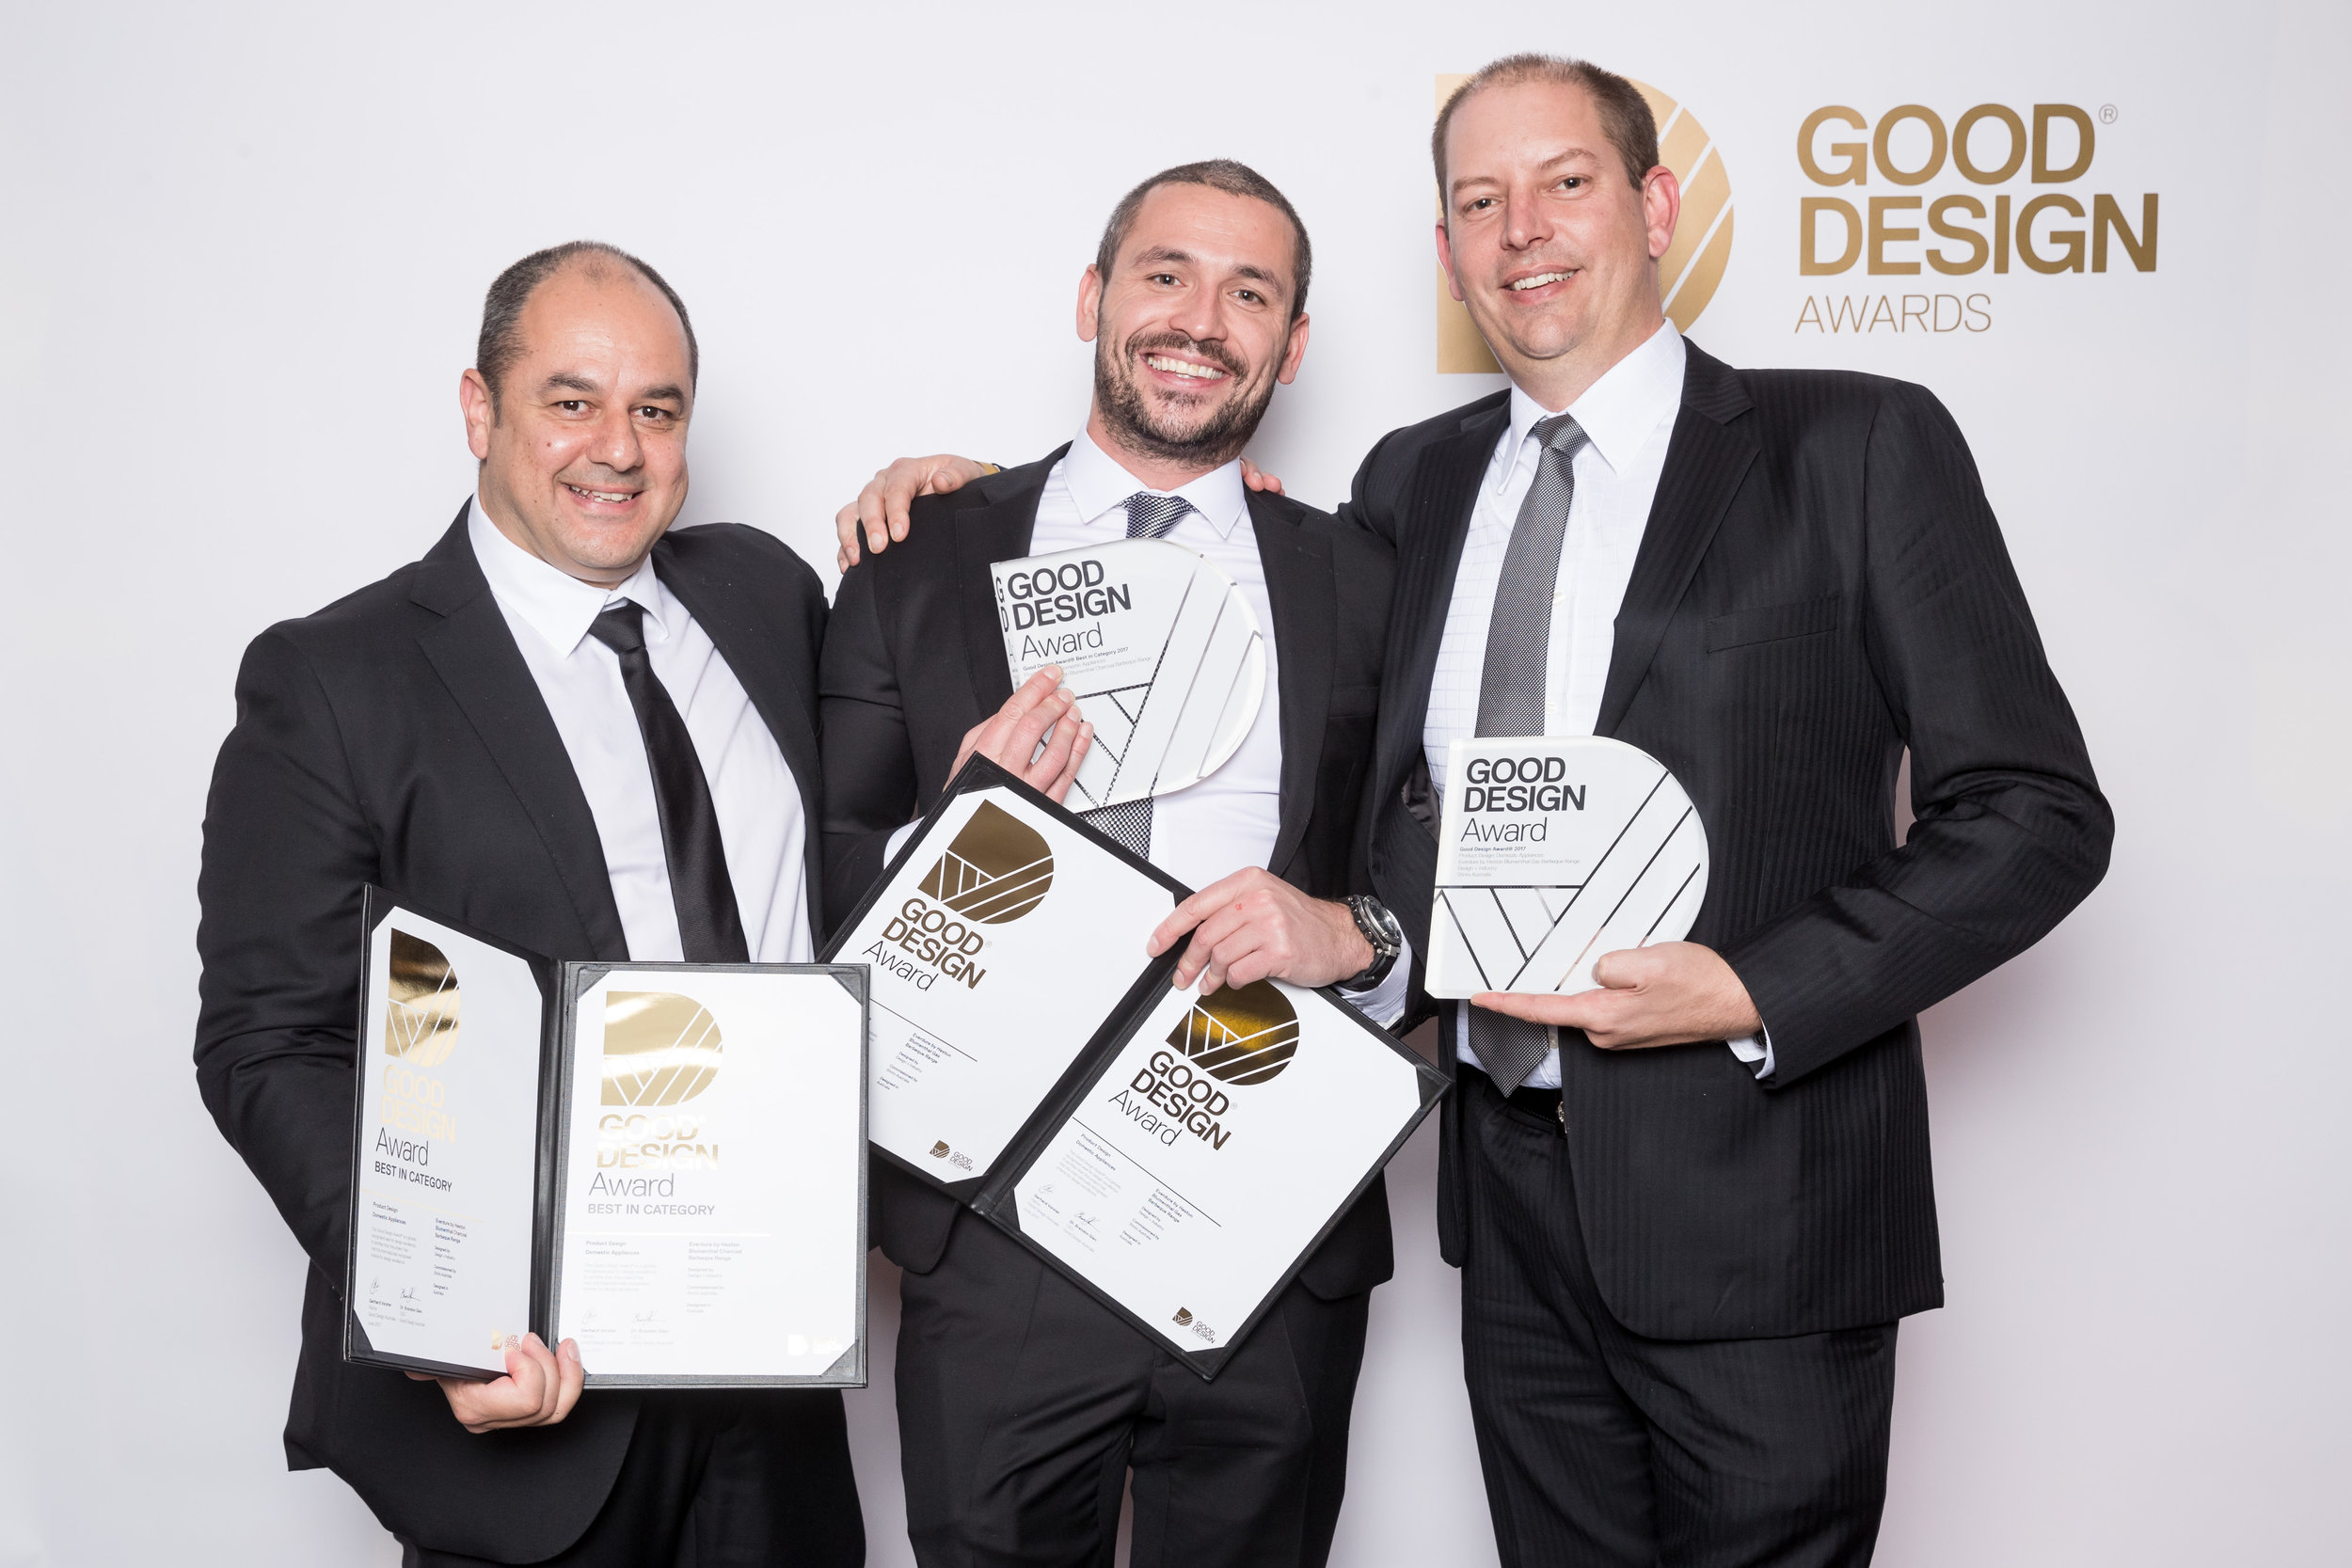 Good Design Awards Winners 2017